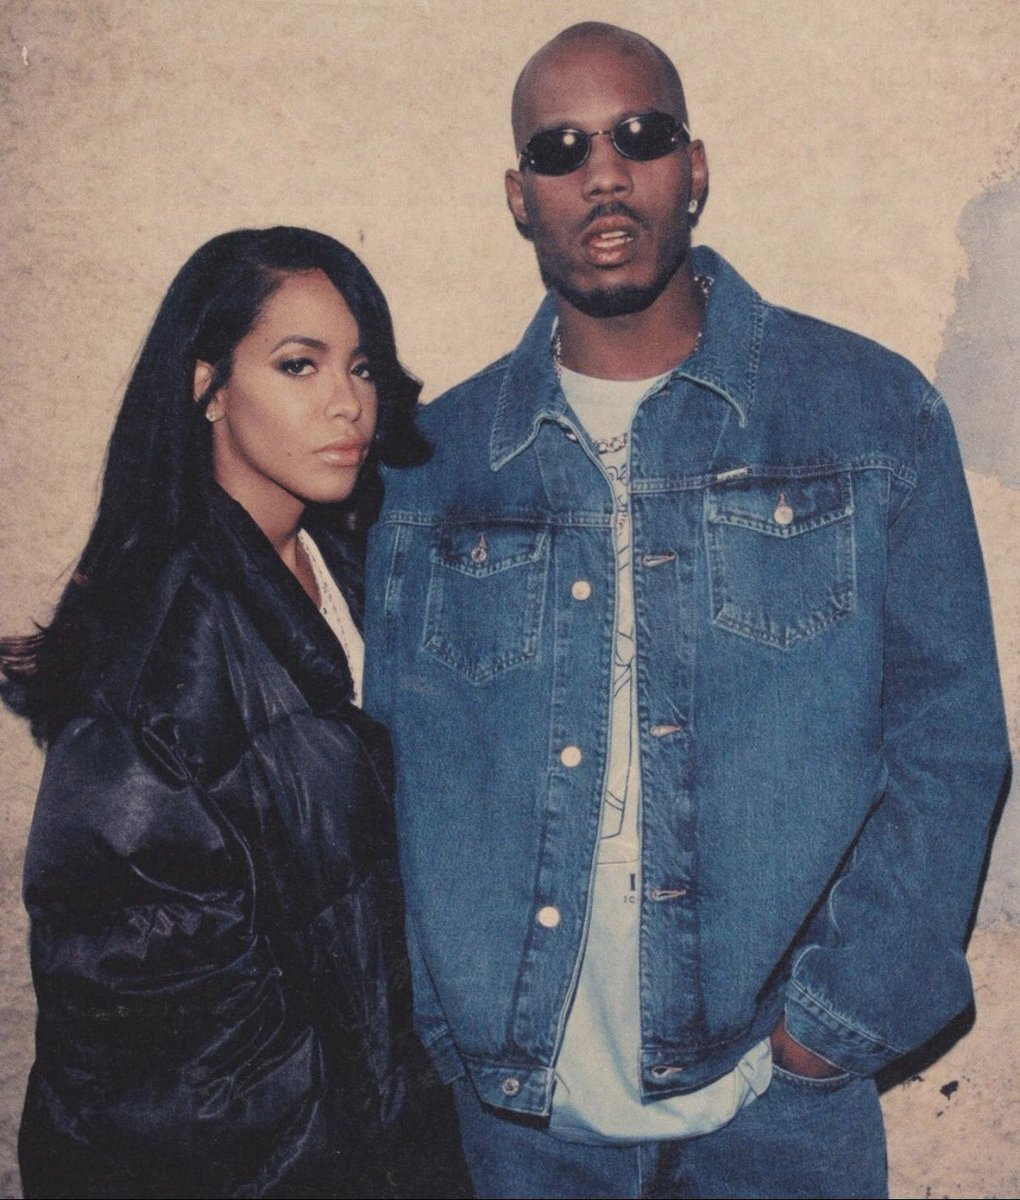 DMX & Aaliyah, 2000. 🕊🖤 https://t.co/xgoTebazND